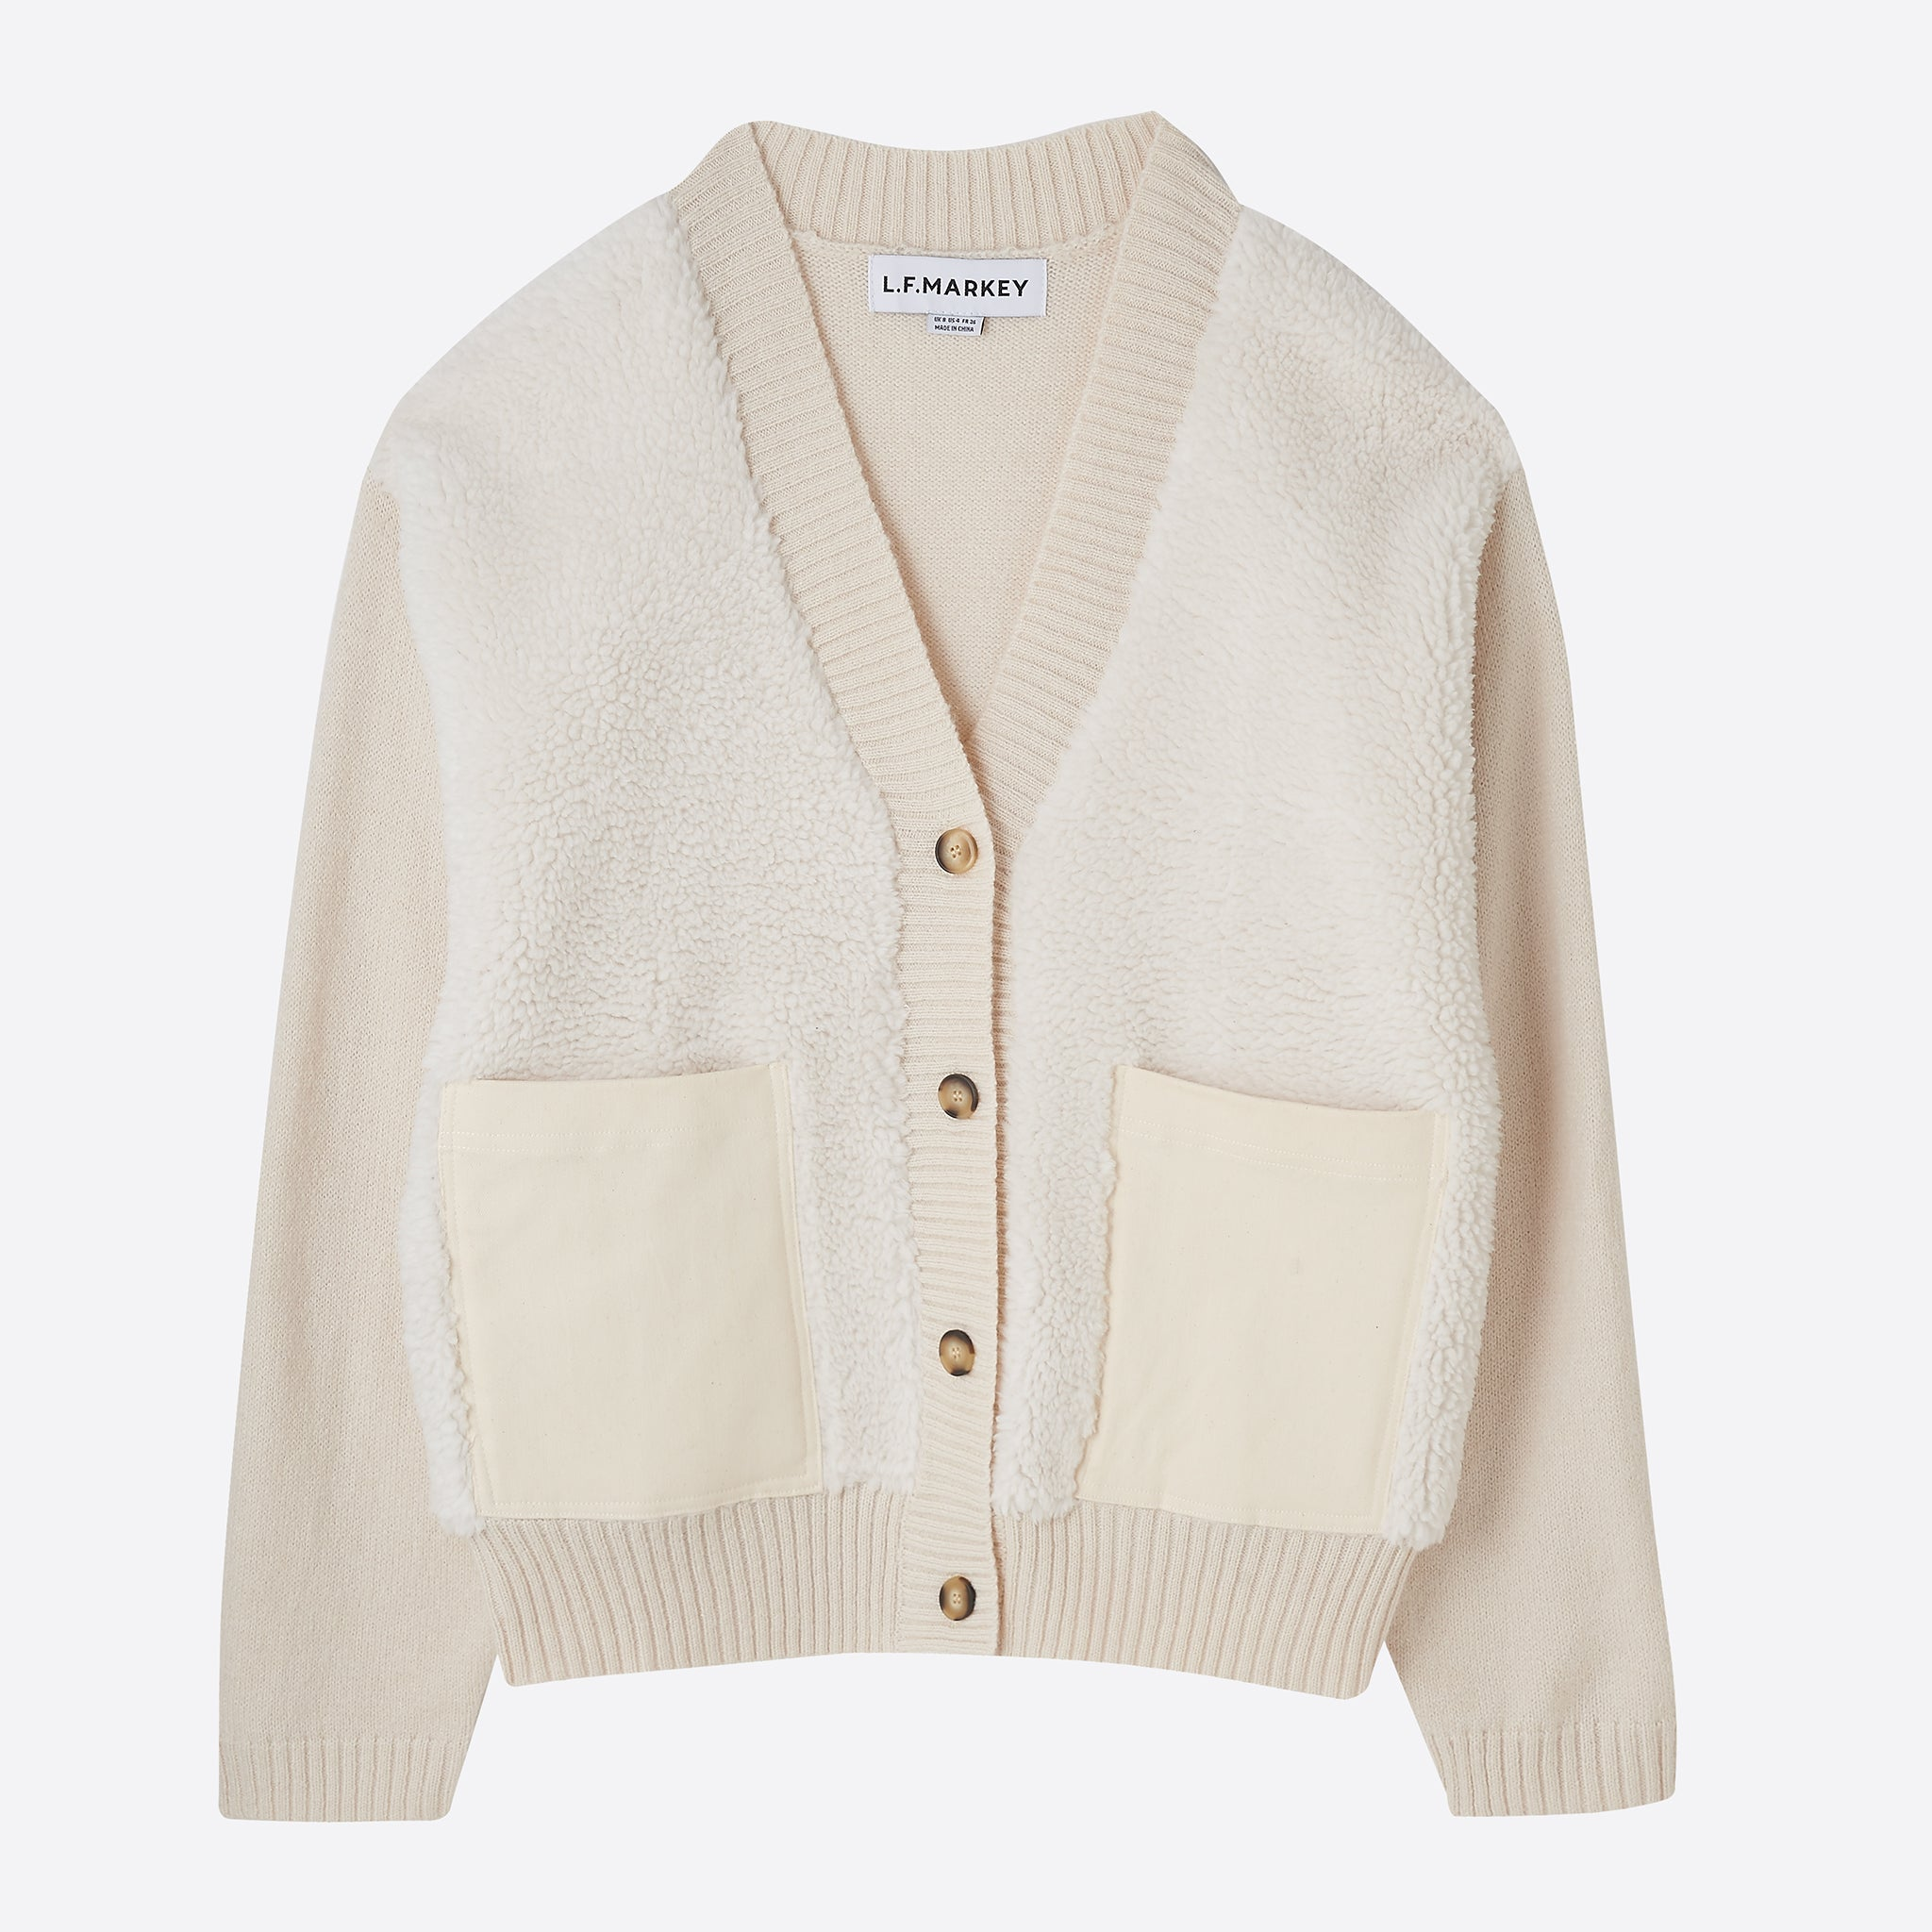 LF Markey Moe Cardigan in Ivory